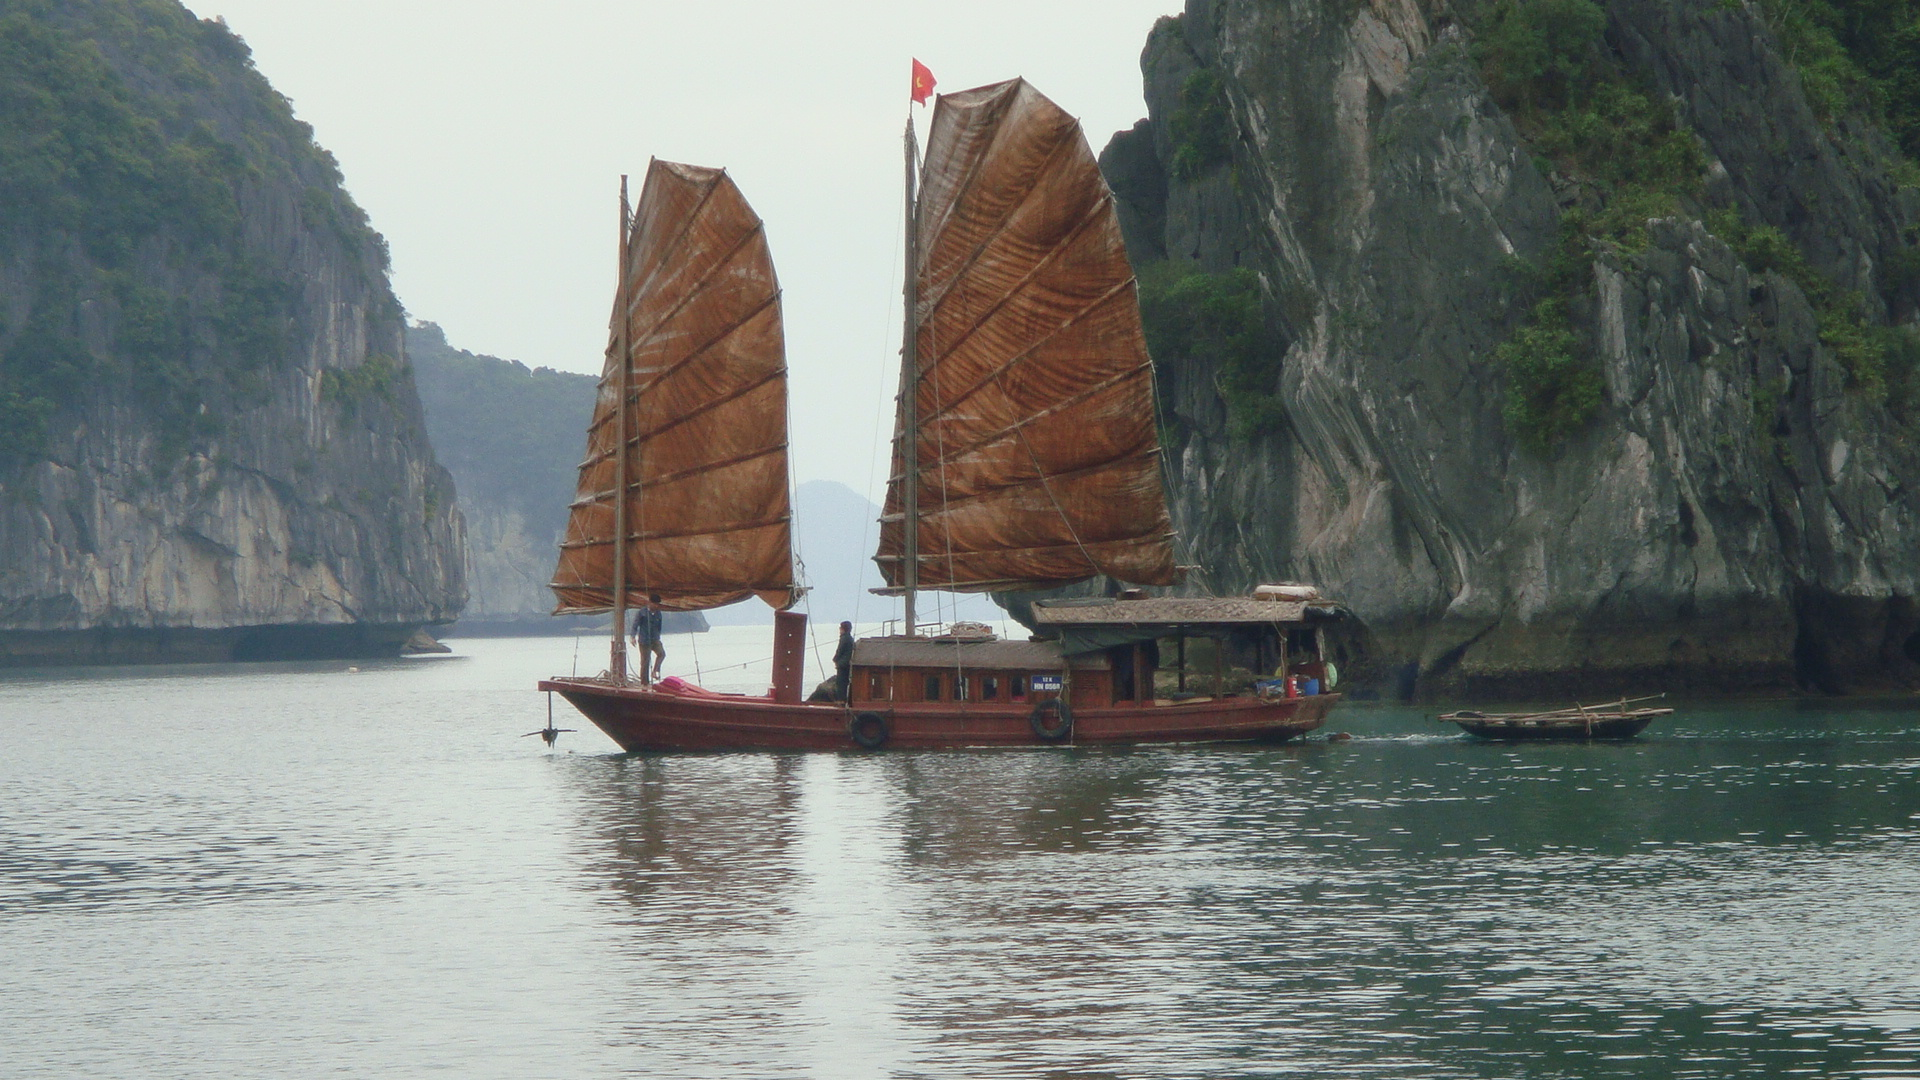 La baie de Ha Long en jonque traditionnelle de charme